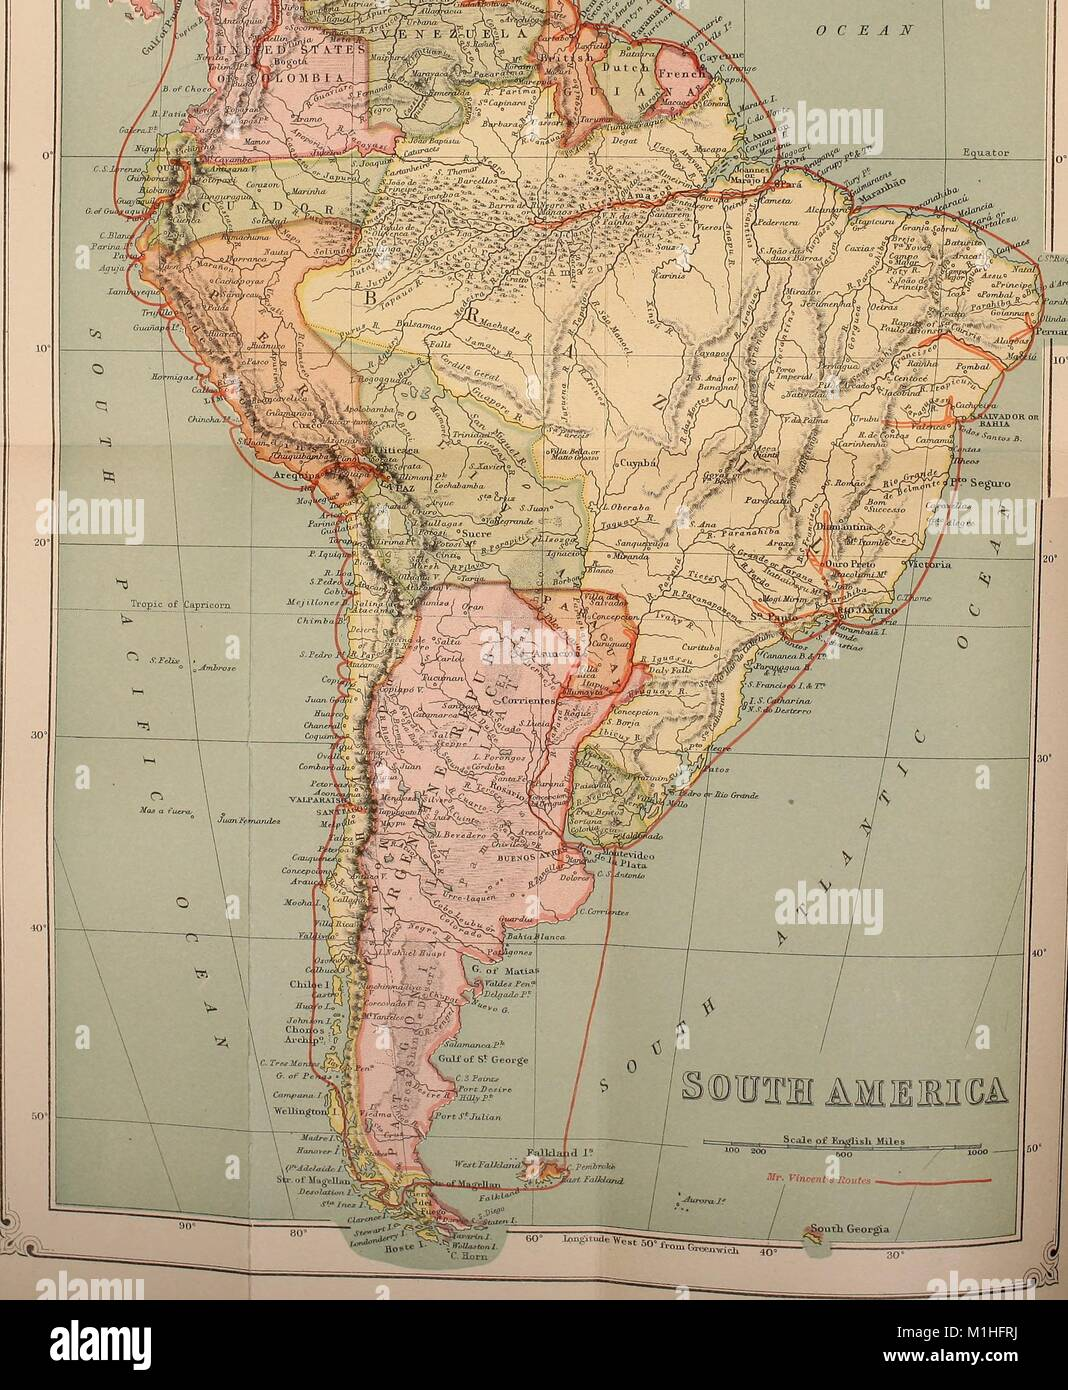 Physical And Political Map Of South America With A Scale Lines Of